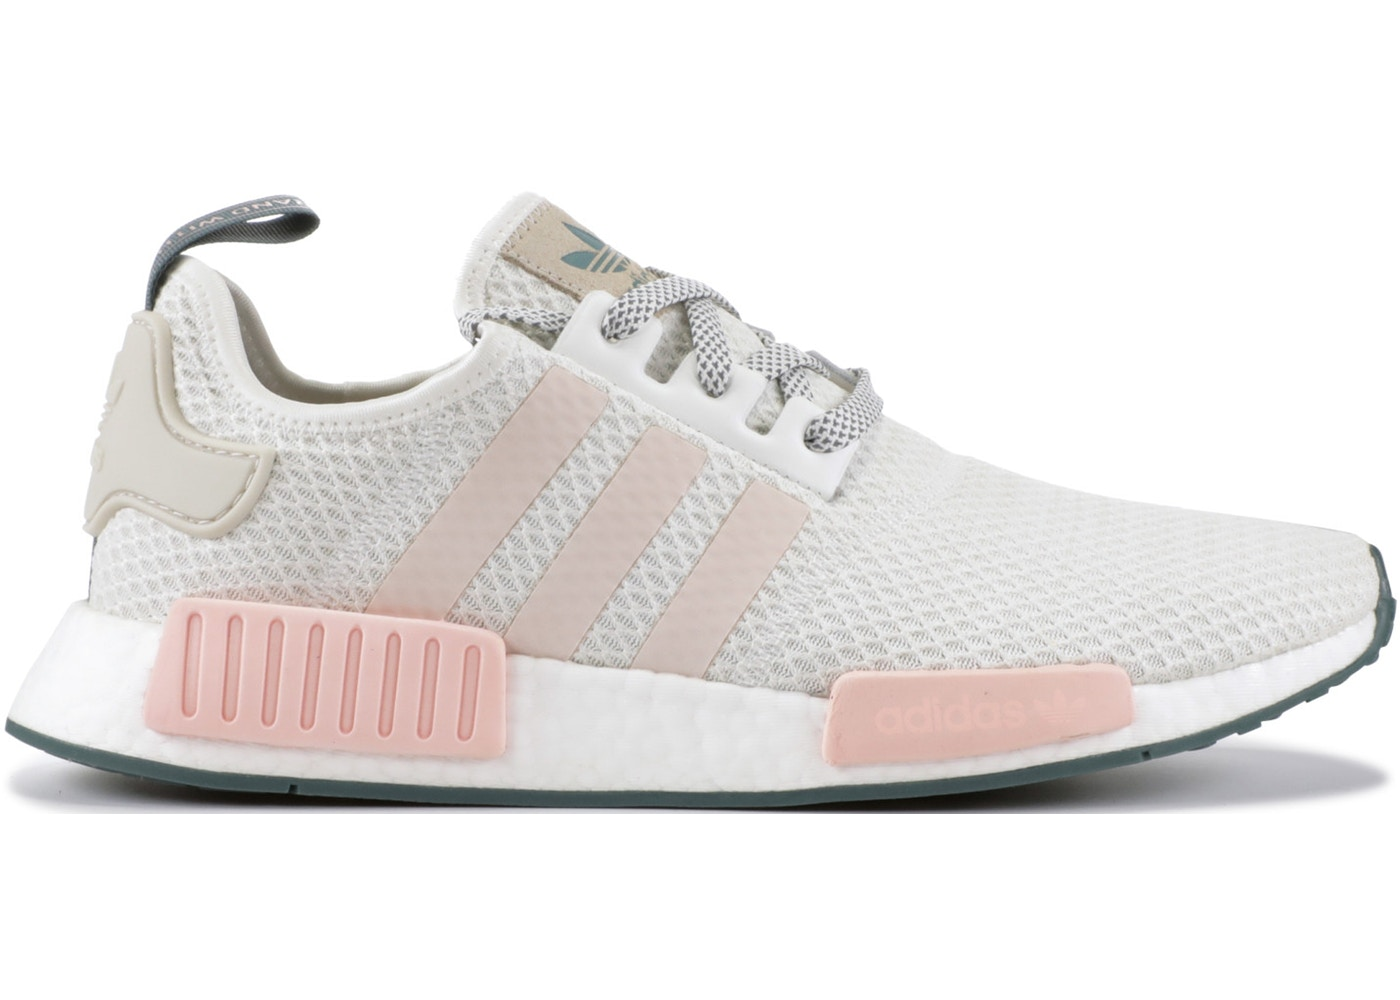 Adidas Nmd R1 Running White Icey Pink W D97232